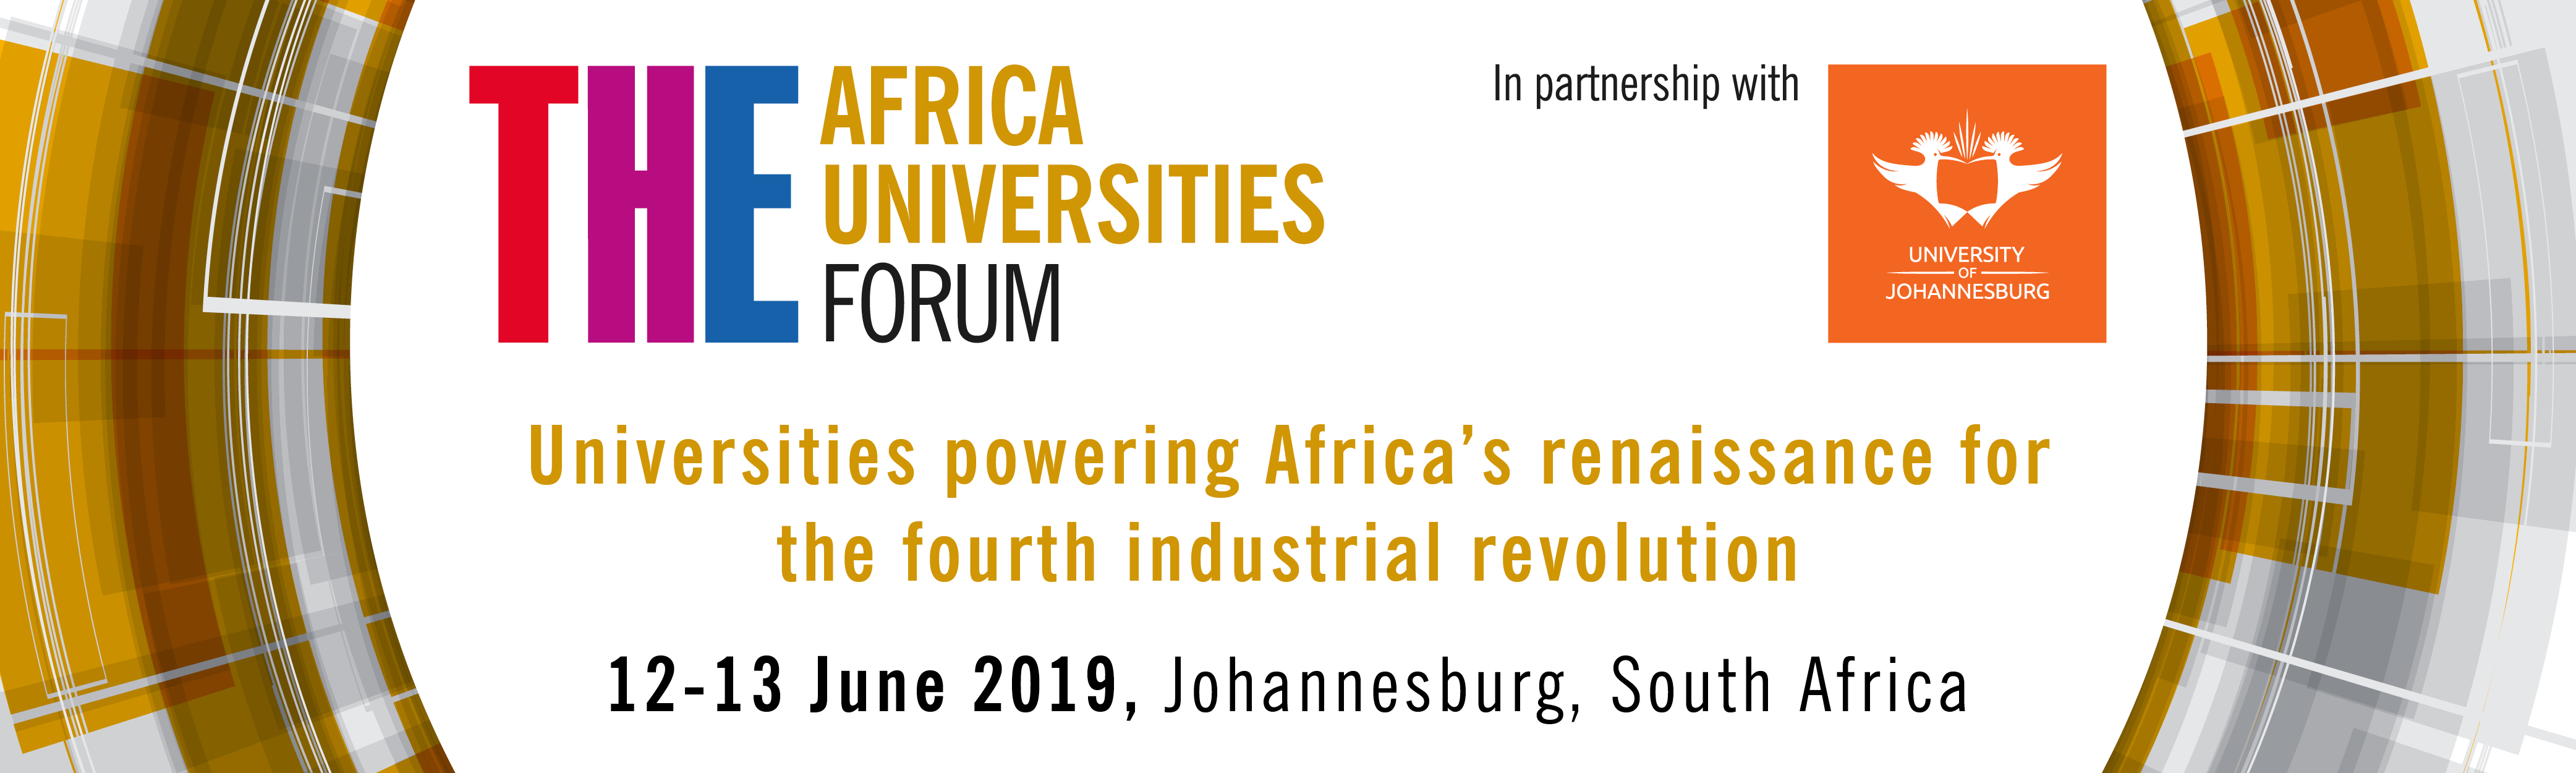 THE Africa Universities Forum